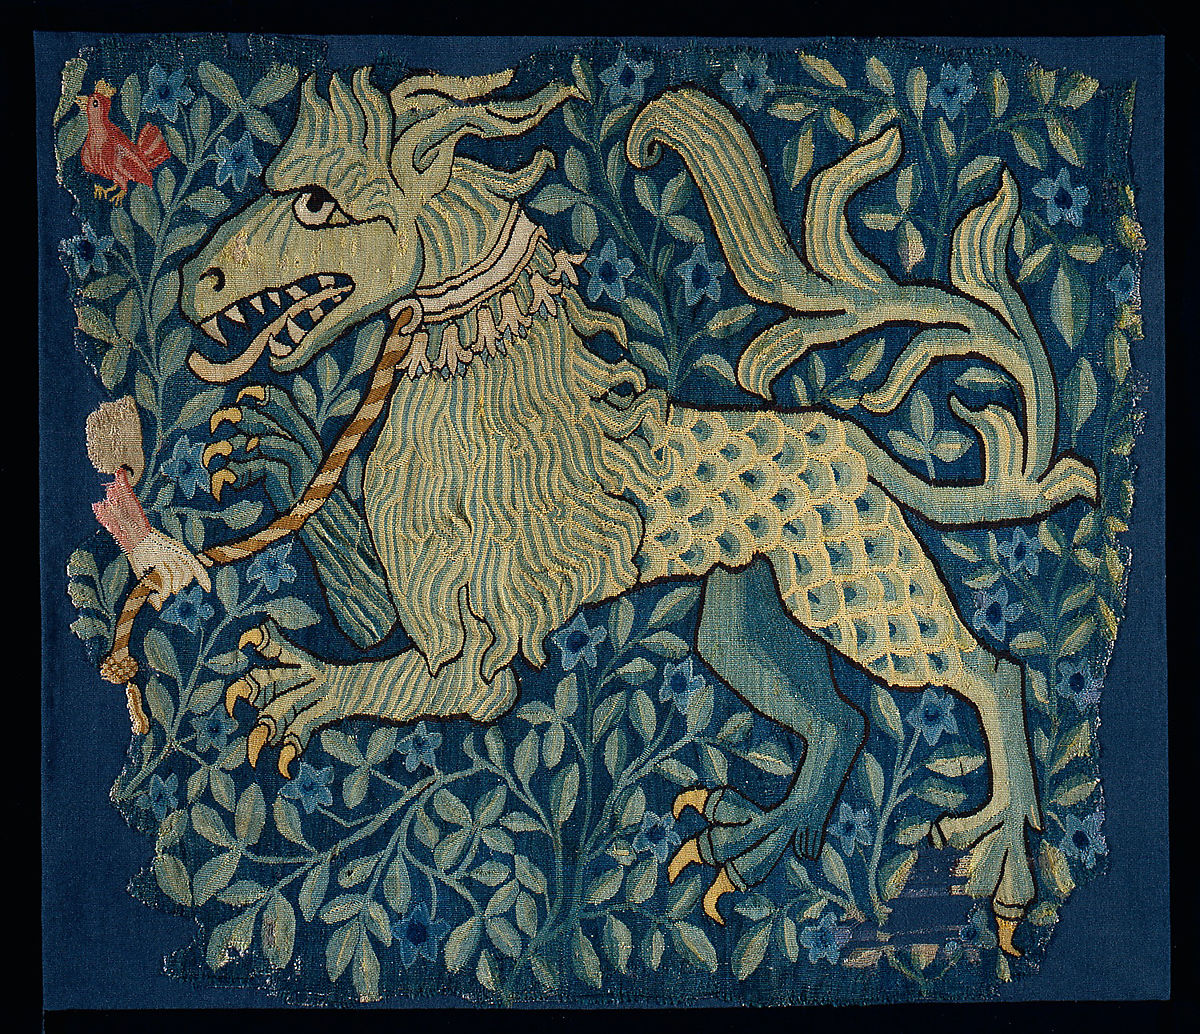 This tapestry fragment represents a fabulous lionlike beast with pointed teeth, clawed feet, and a scaly rump.